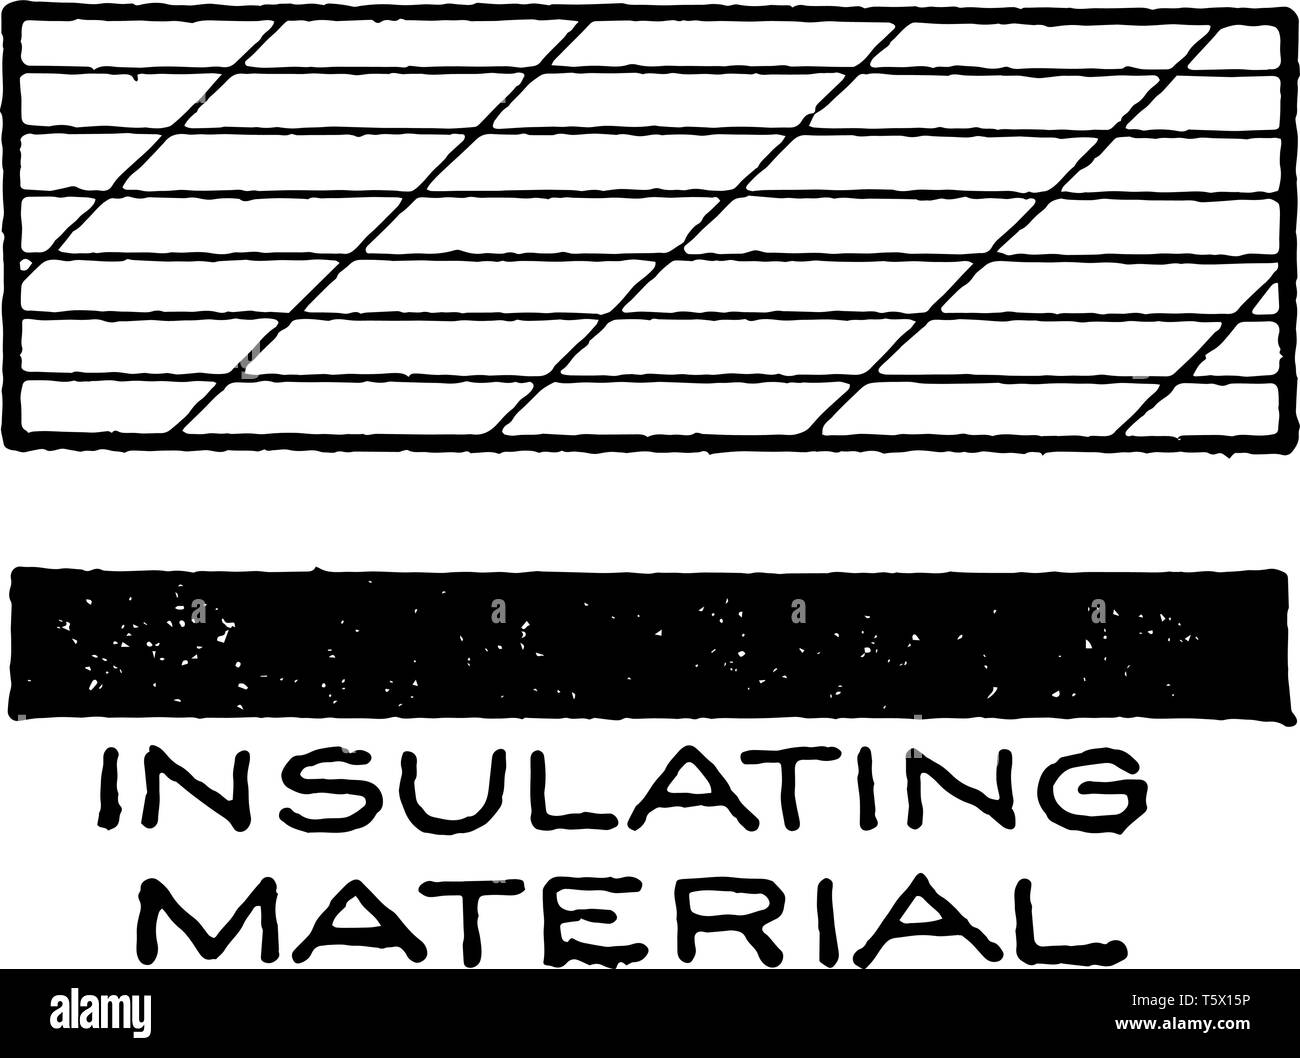 Mechanical Drawing Cross Hatching of Insulating Material is similar in both drawing and painting, two basic techniques for the creation of tone, vinta - Stock Image